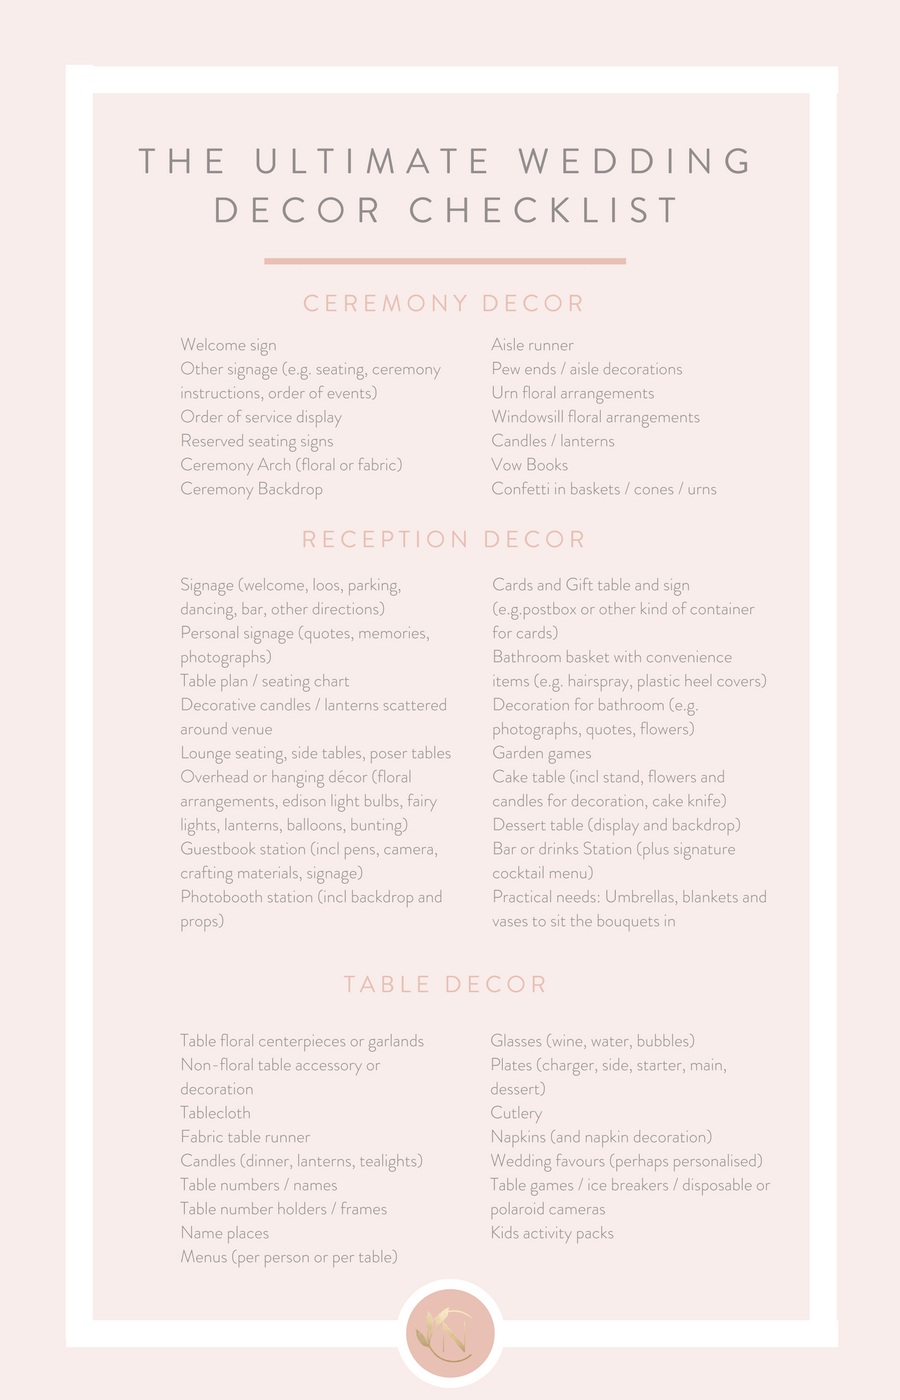 THE ULTIMATE WEDDING DECOR CHECKLIST